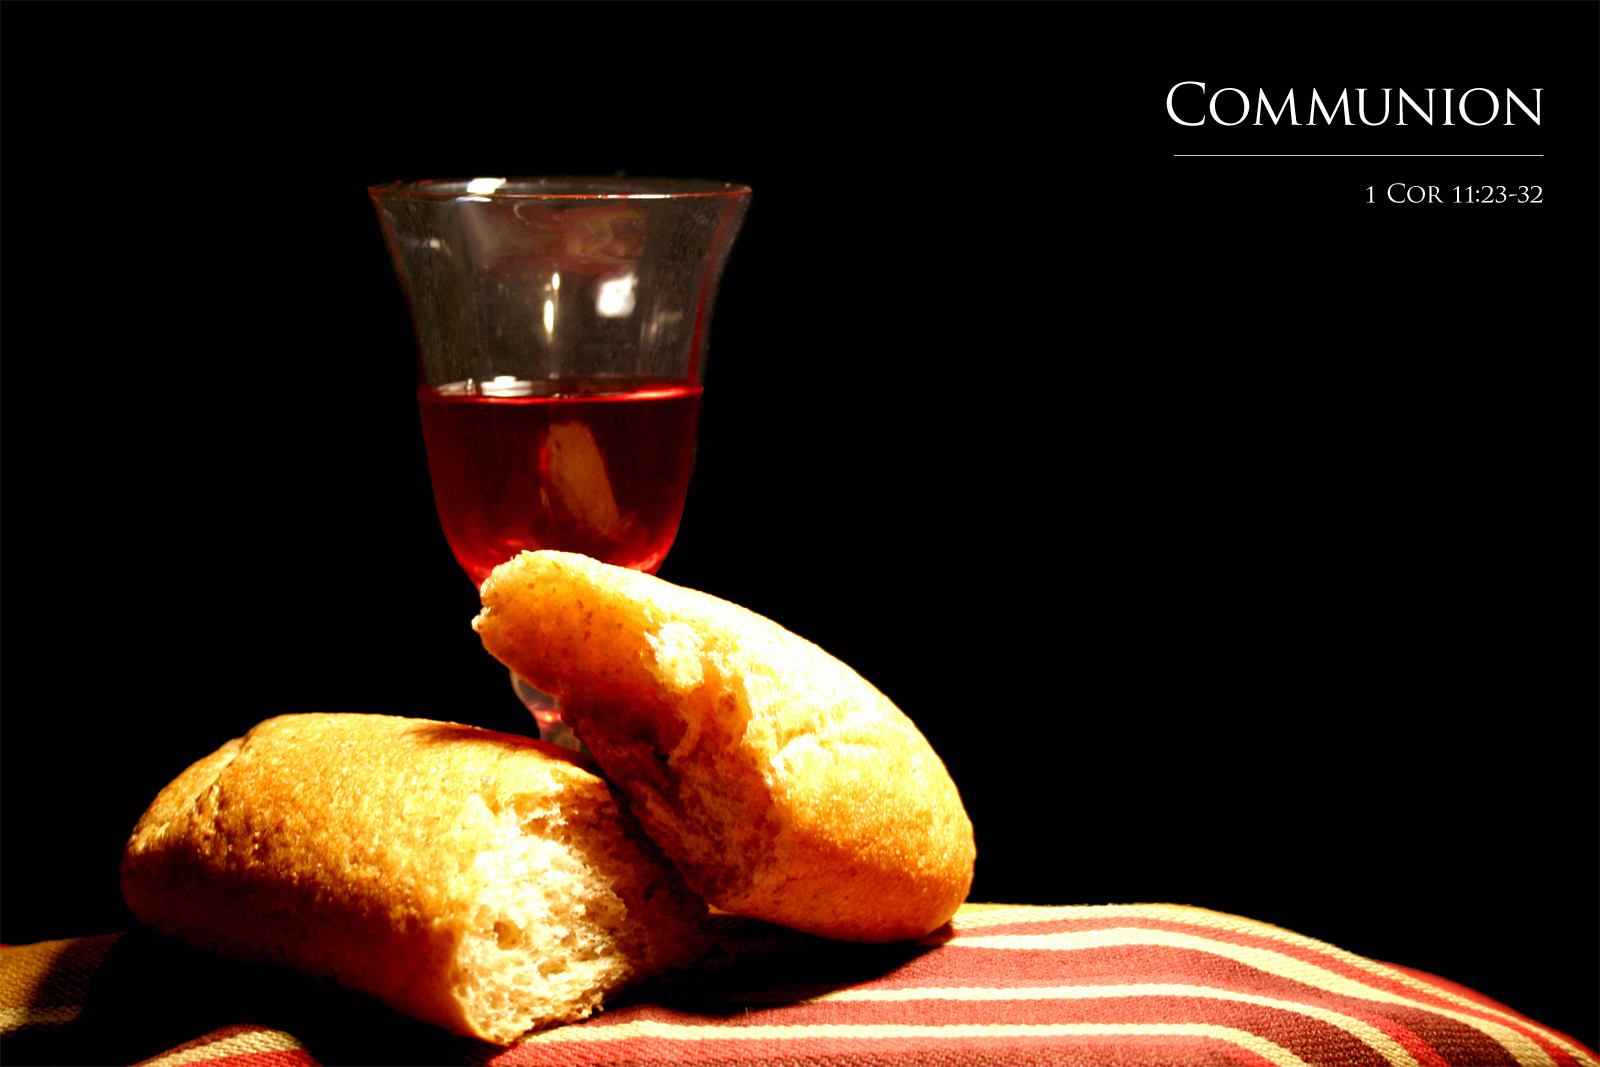 communion gospellight community church